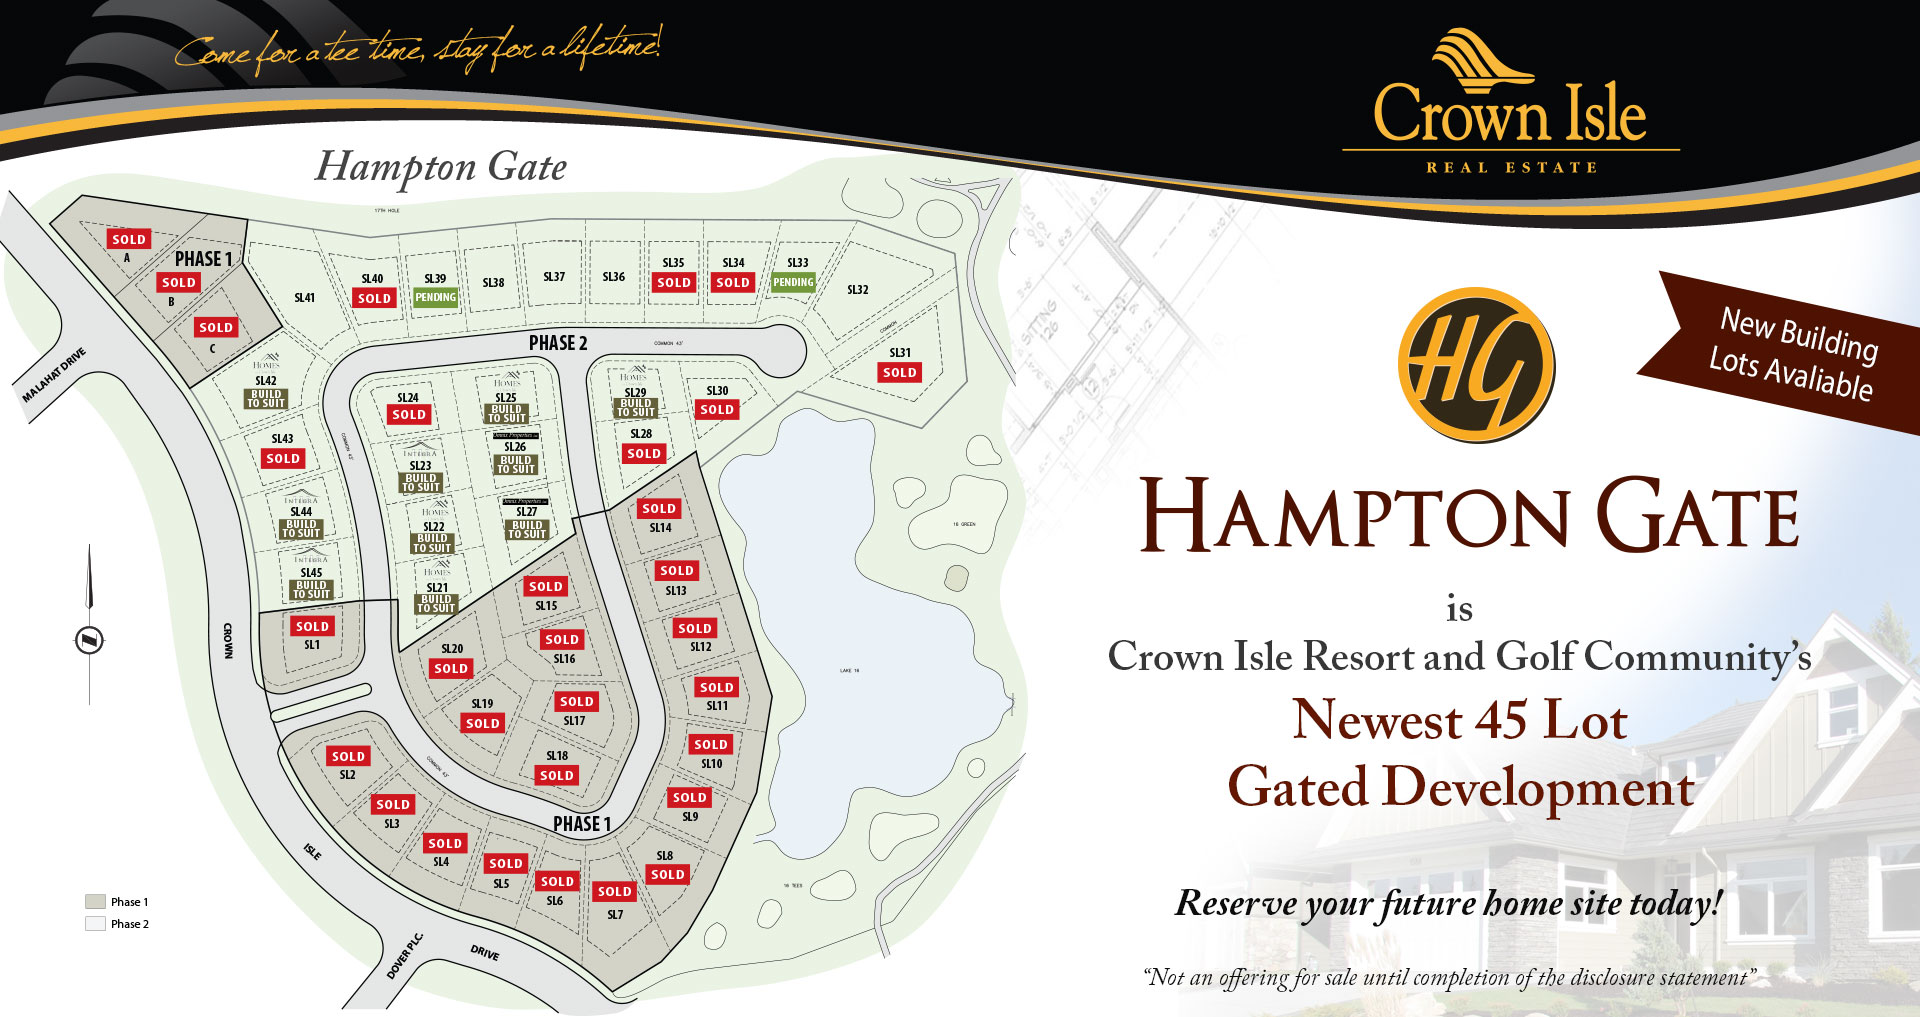 hampton gate crown isle real estate